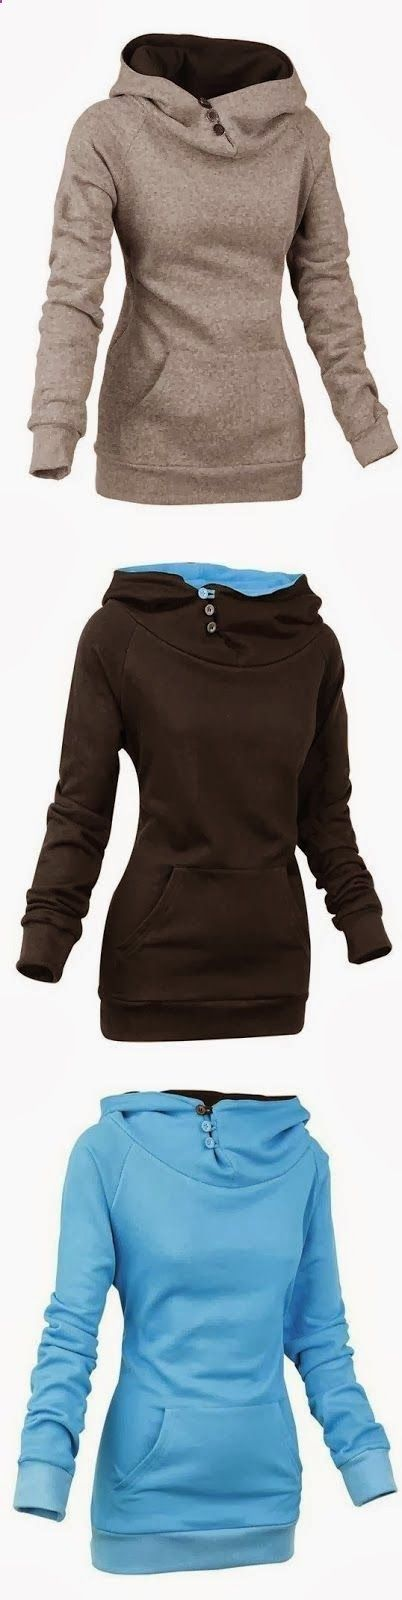 Finally, hoodies with style.